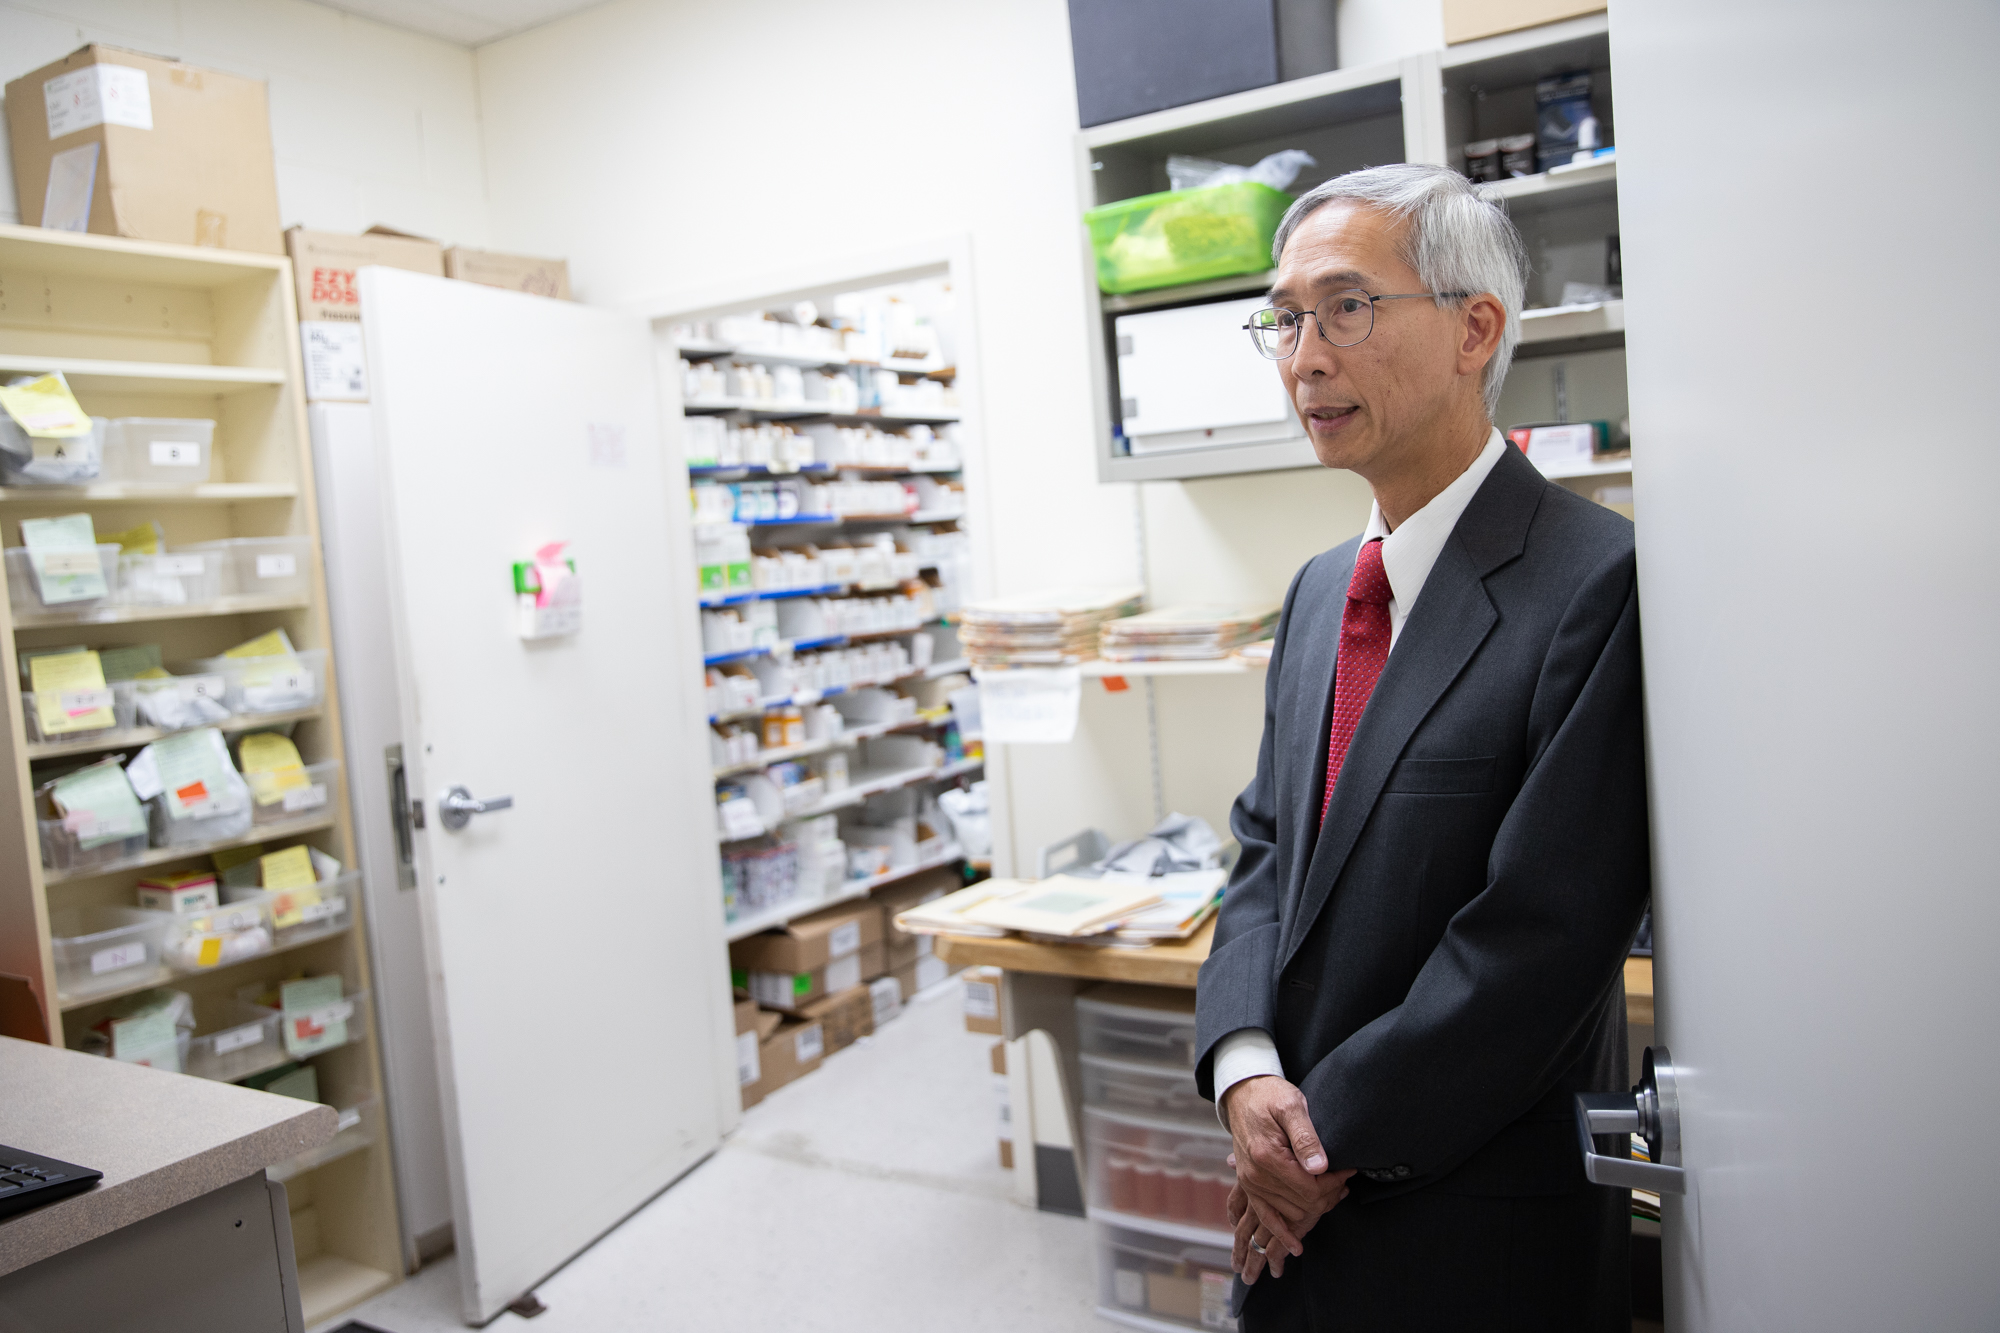 Dr. Jason Wong, medical director at Samaritan House's North Fair Oaks Clinic, says the food pharmacy has been as helpful for patients seeking to control their diabetes as an oral medication. (Photo by Magali Gauthier/The Almanac.)